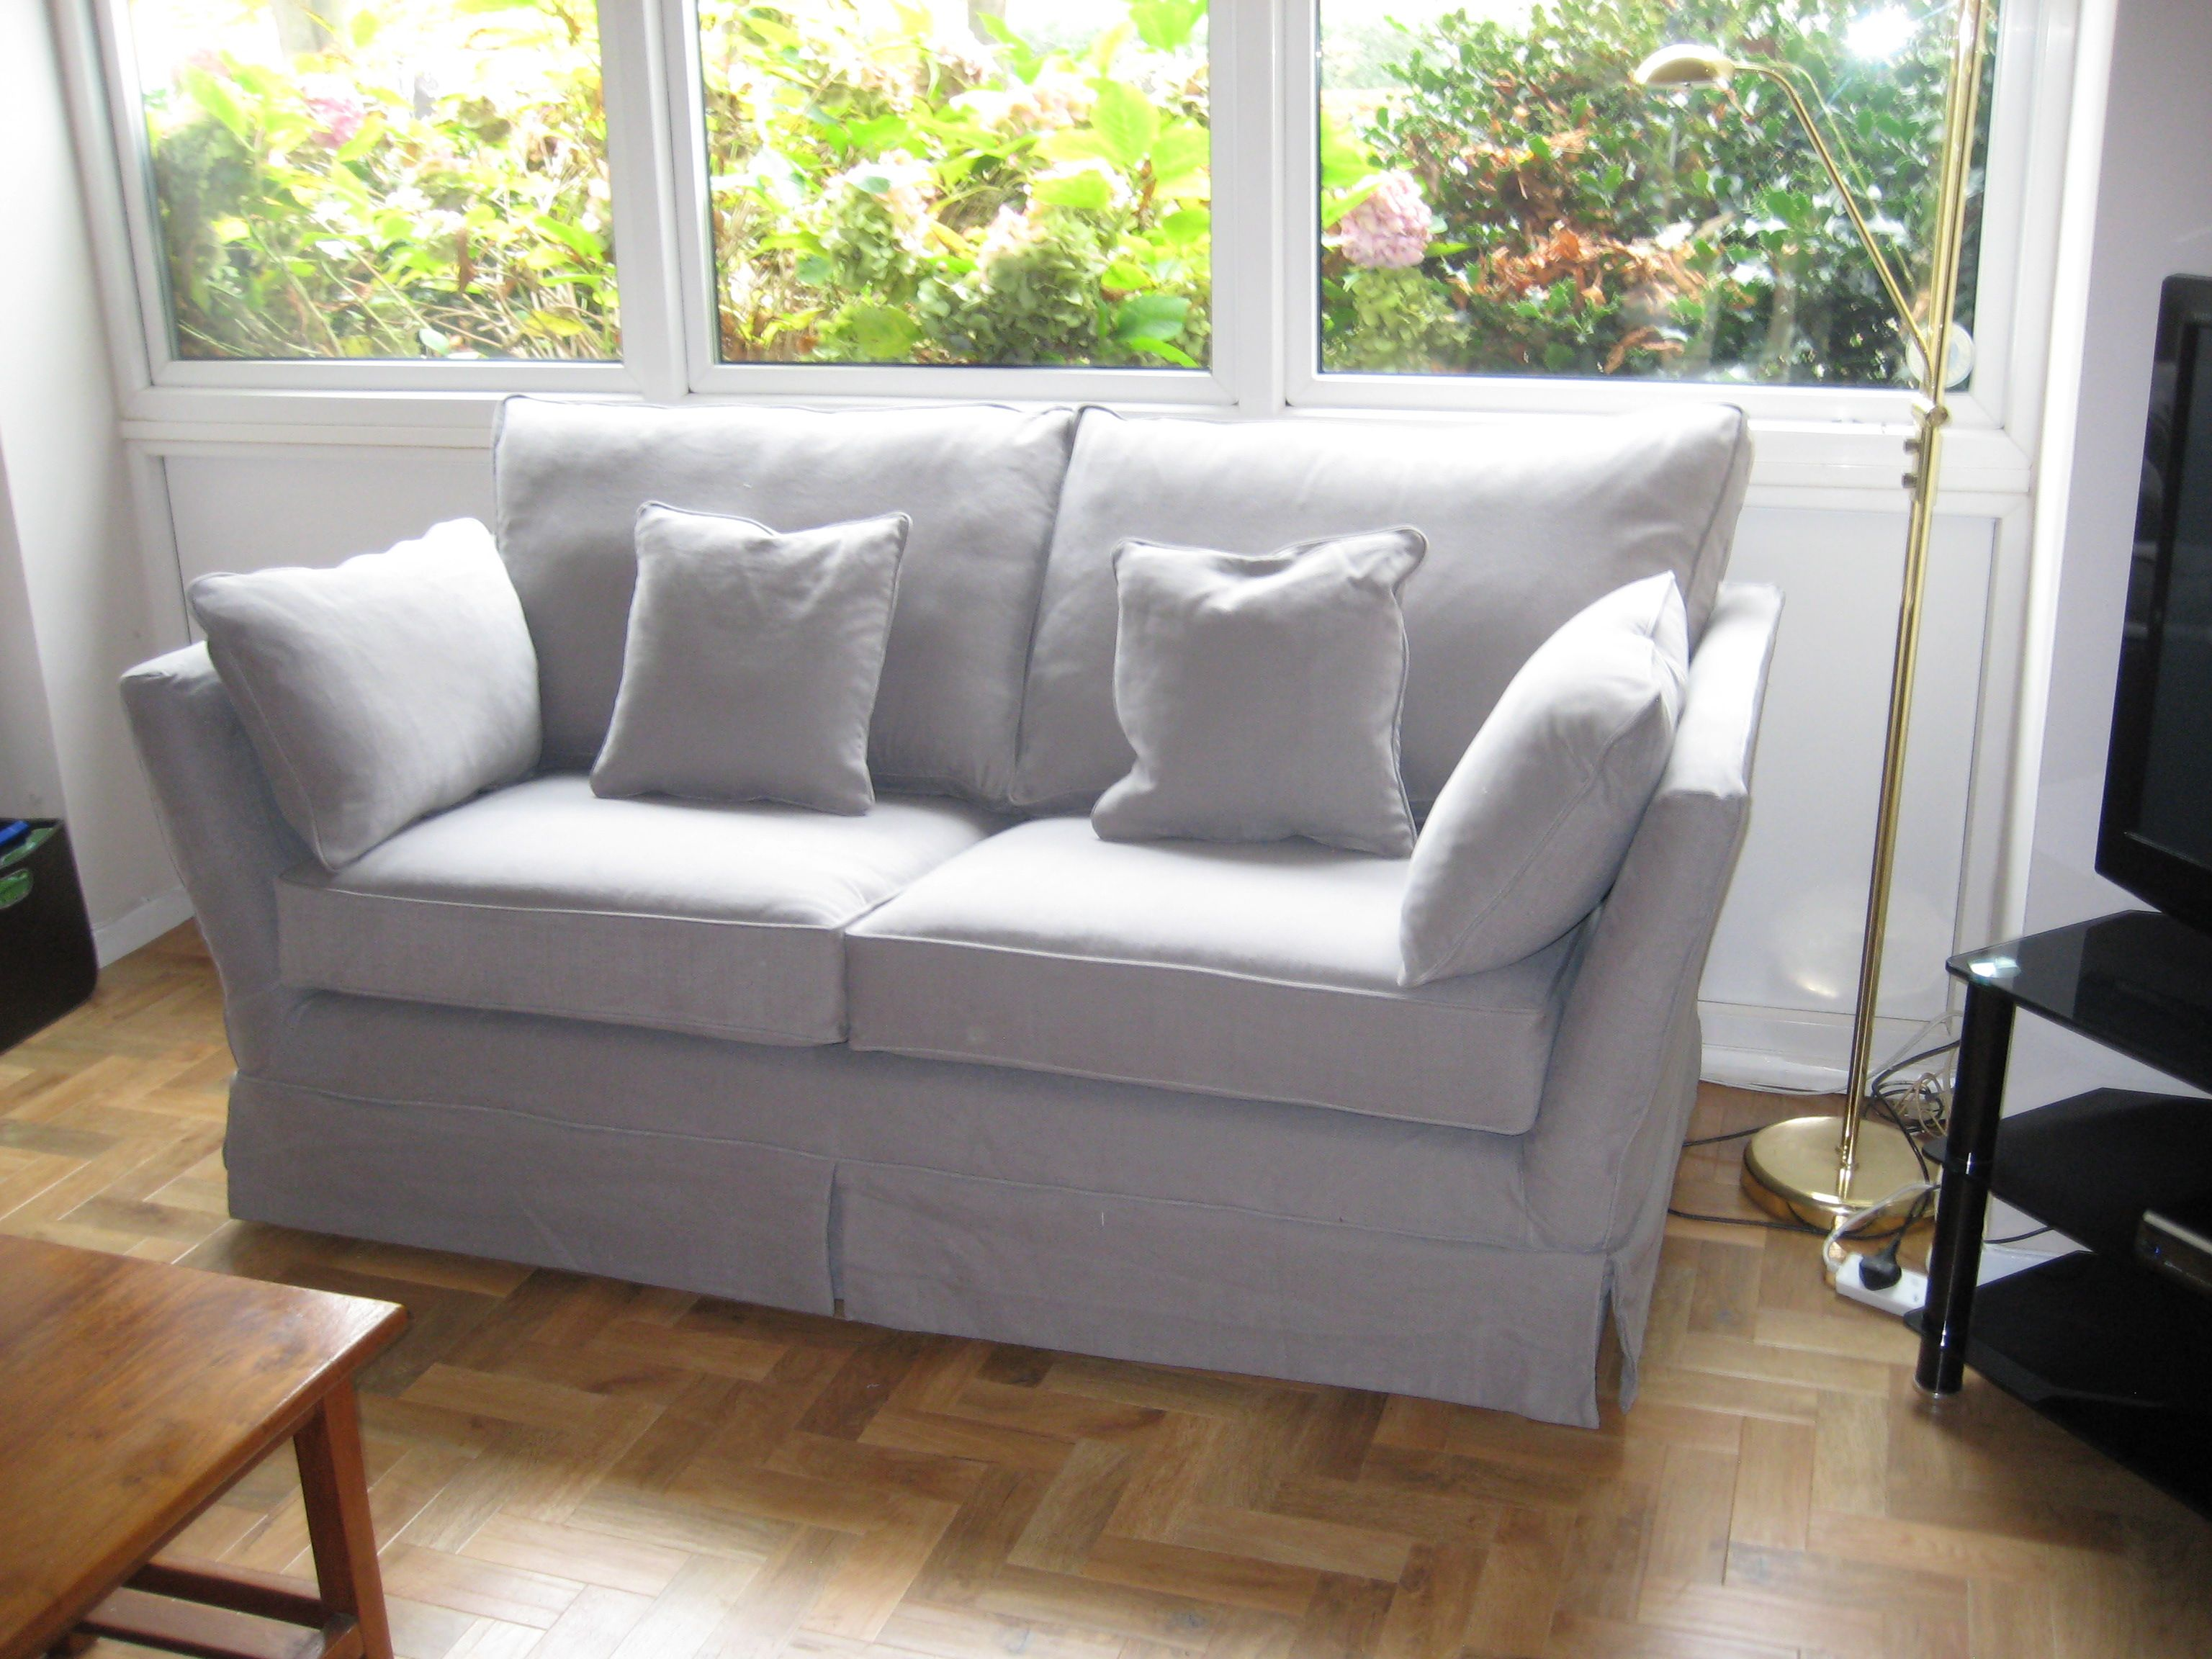 Looking for a timeless traditional shabby chic sofa Why not